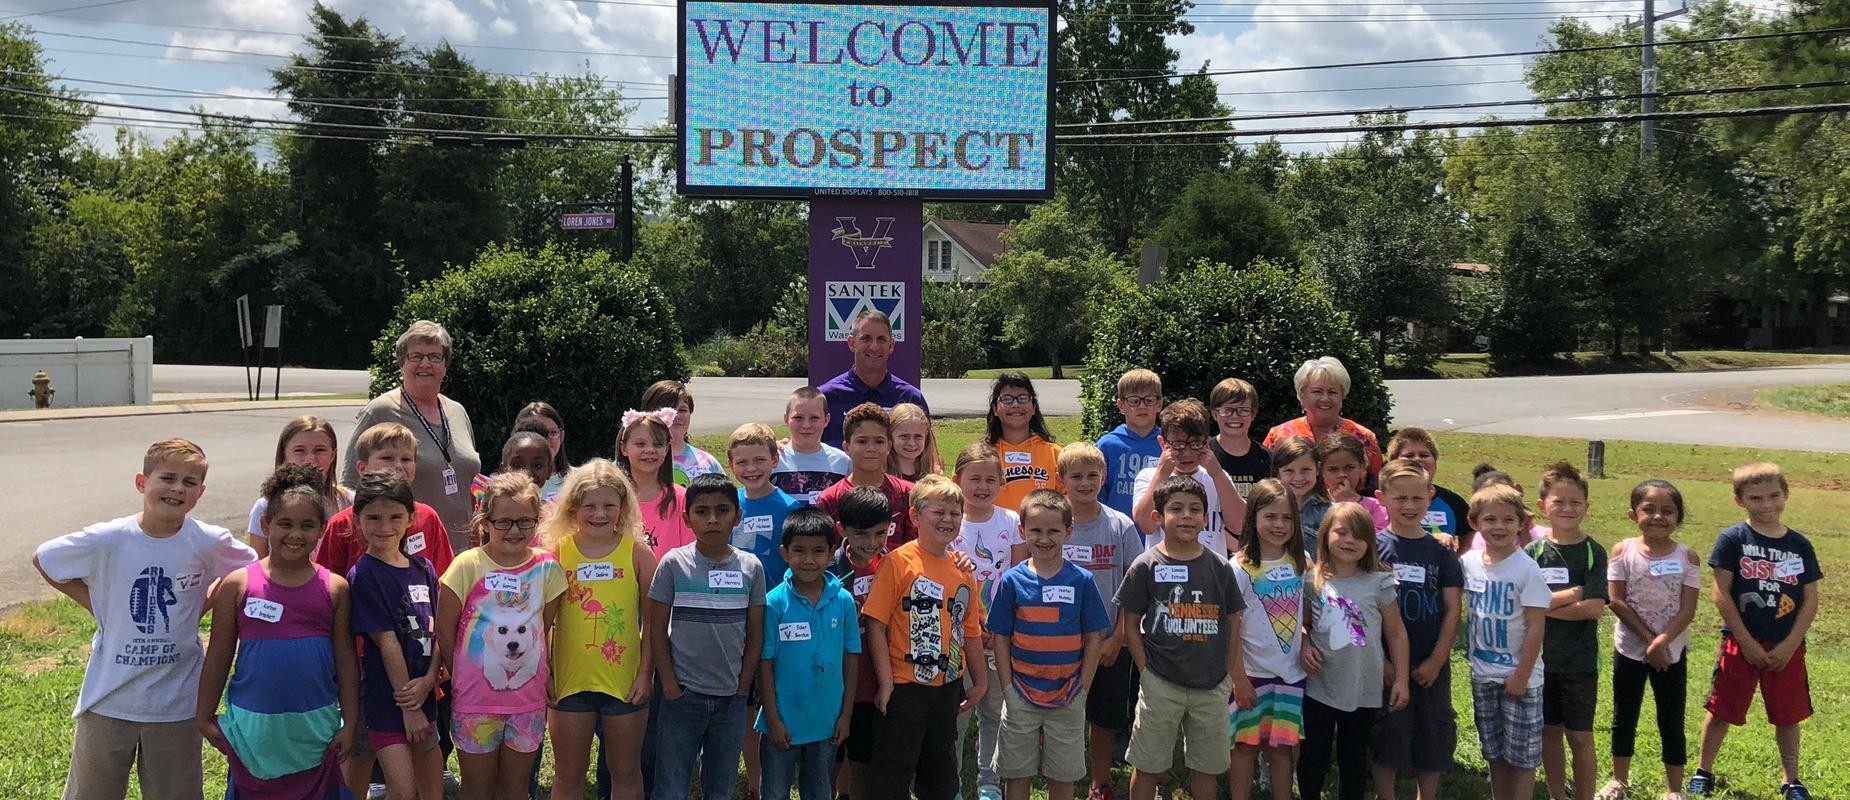 New students at Prospect